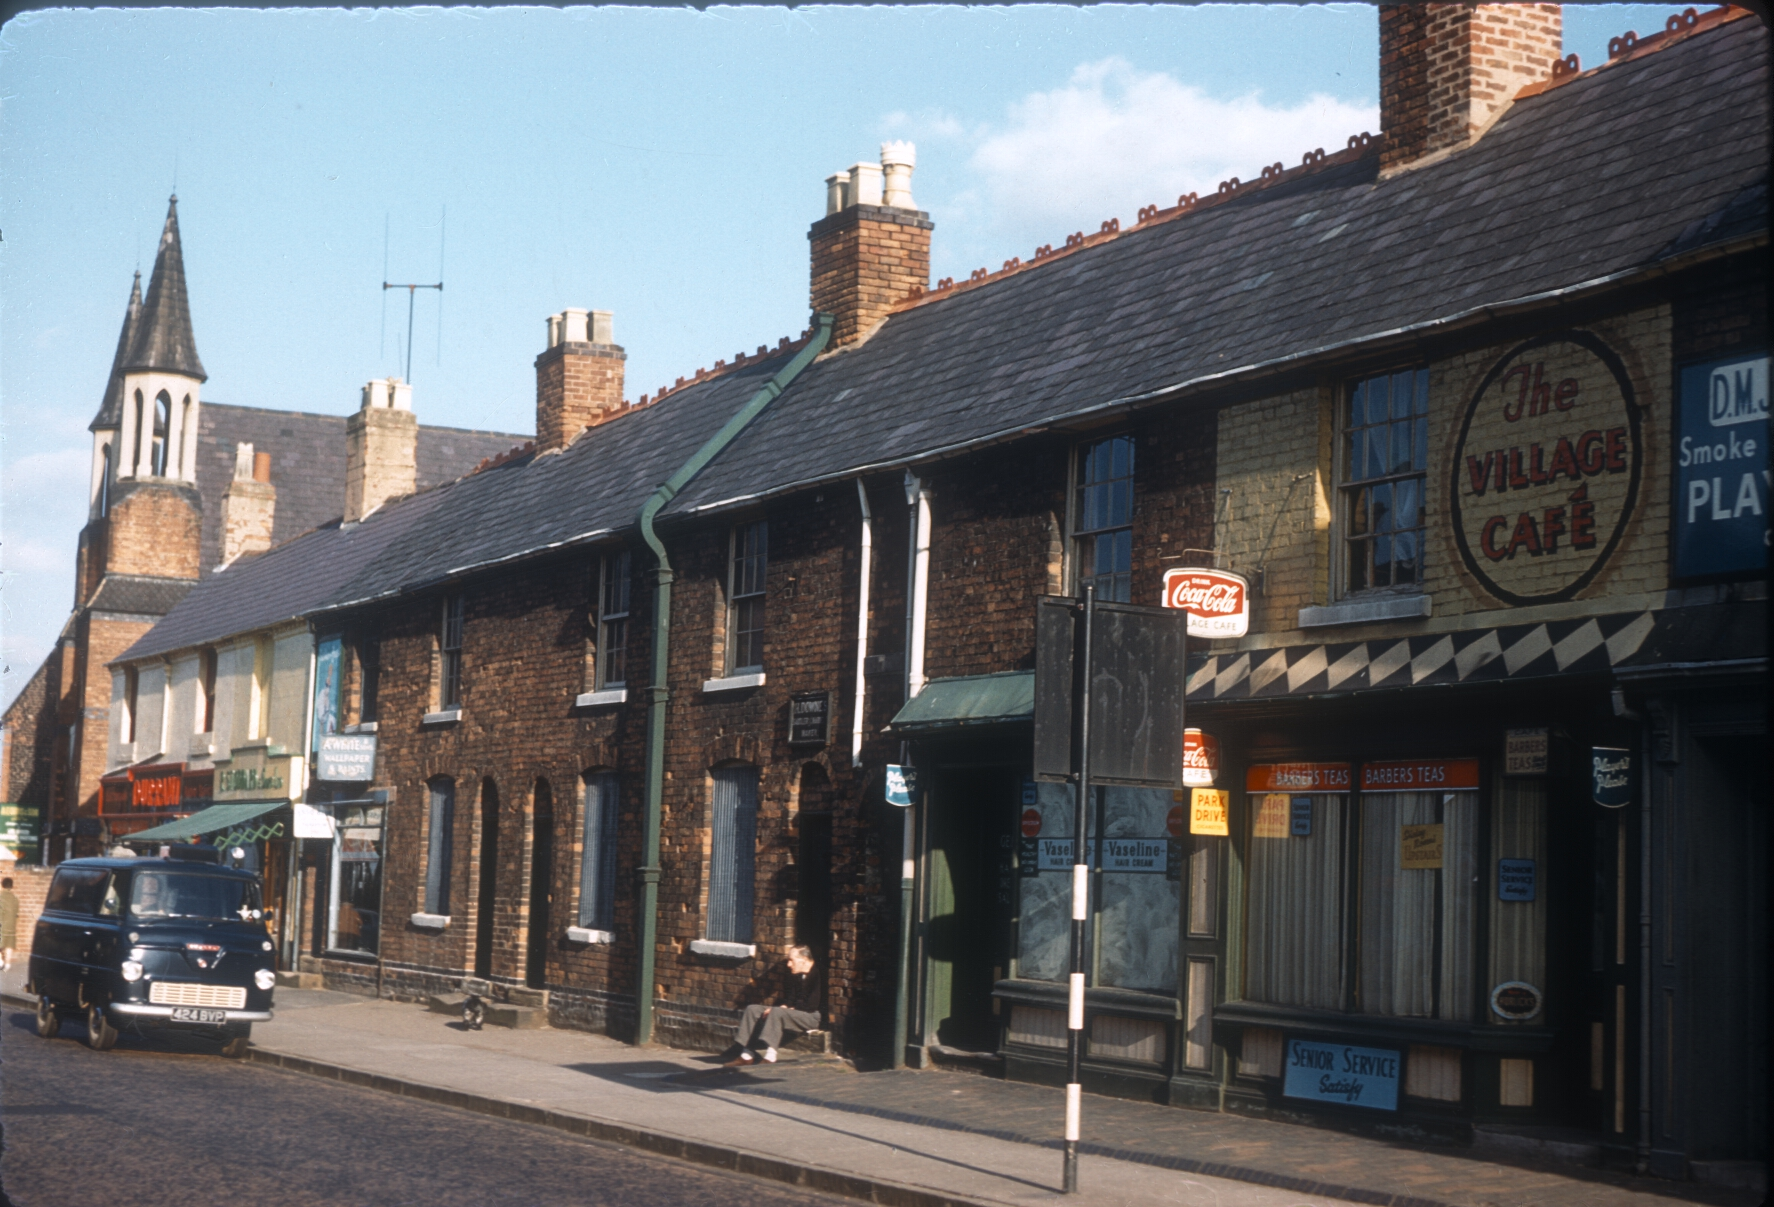 Harborne High Street. Terrace demolished 1962 (View towards Baptist Church) 12th August 1961